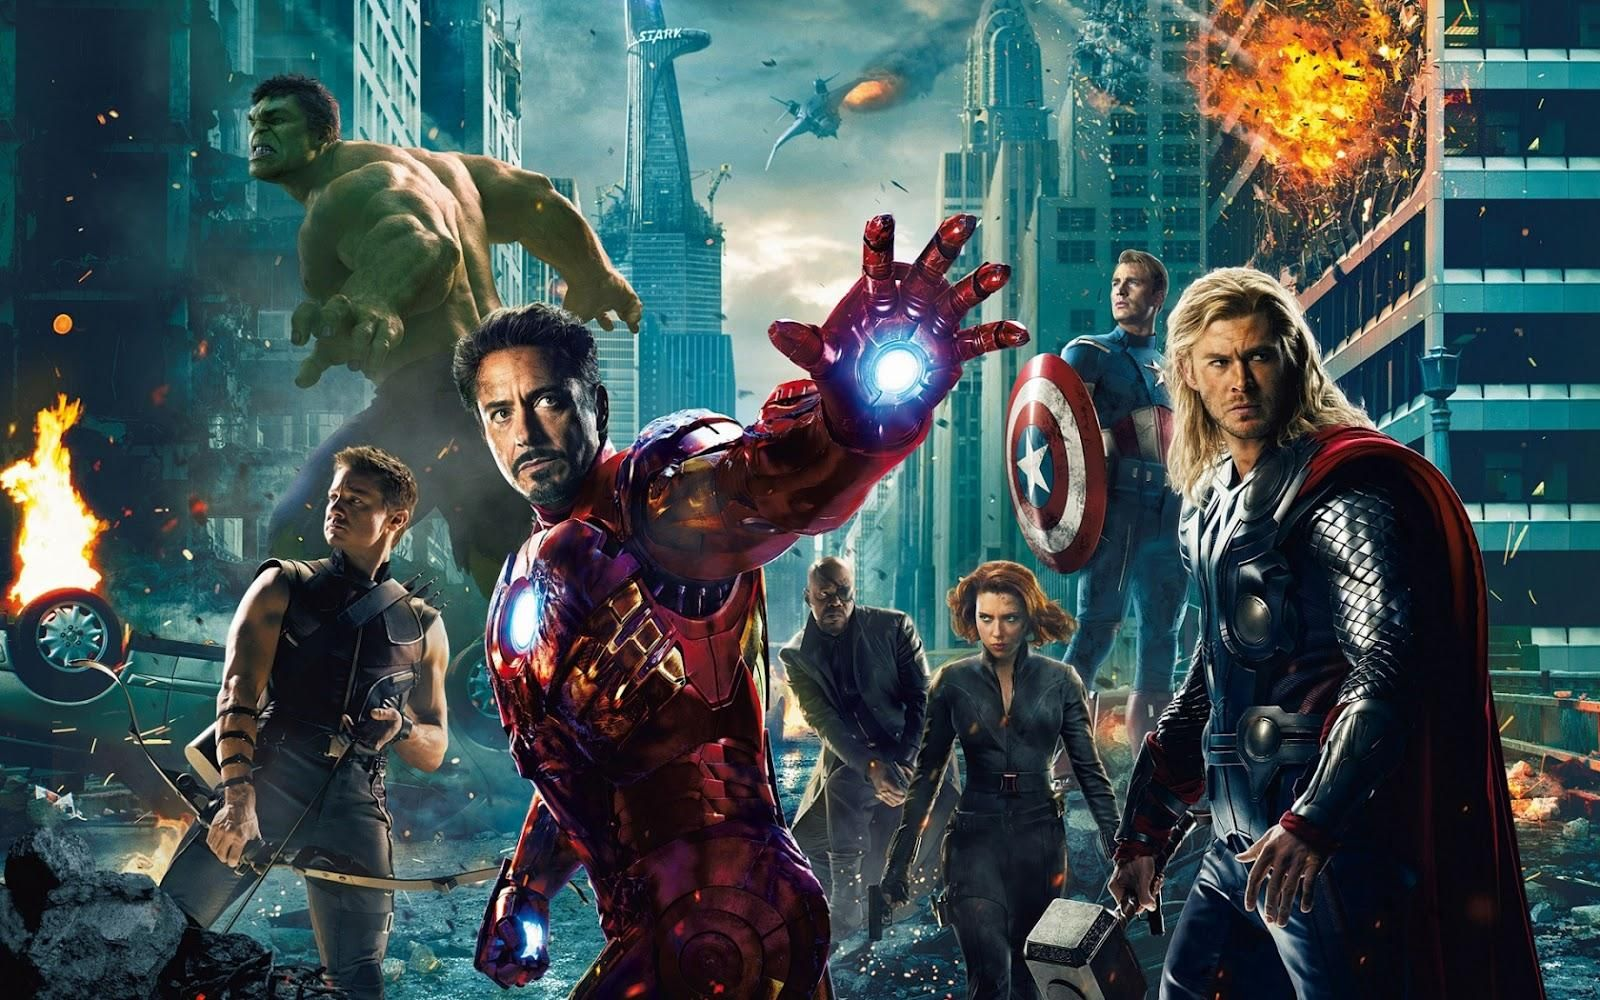 Amazing Wallpaper Marvel Avengers Age Ultron - 1fa753f8884191285bf630116a41dc8c  You Should Have_85665.jpg